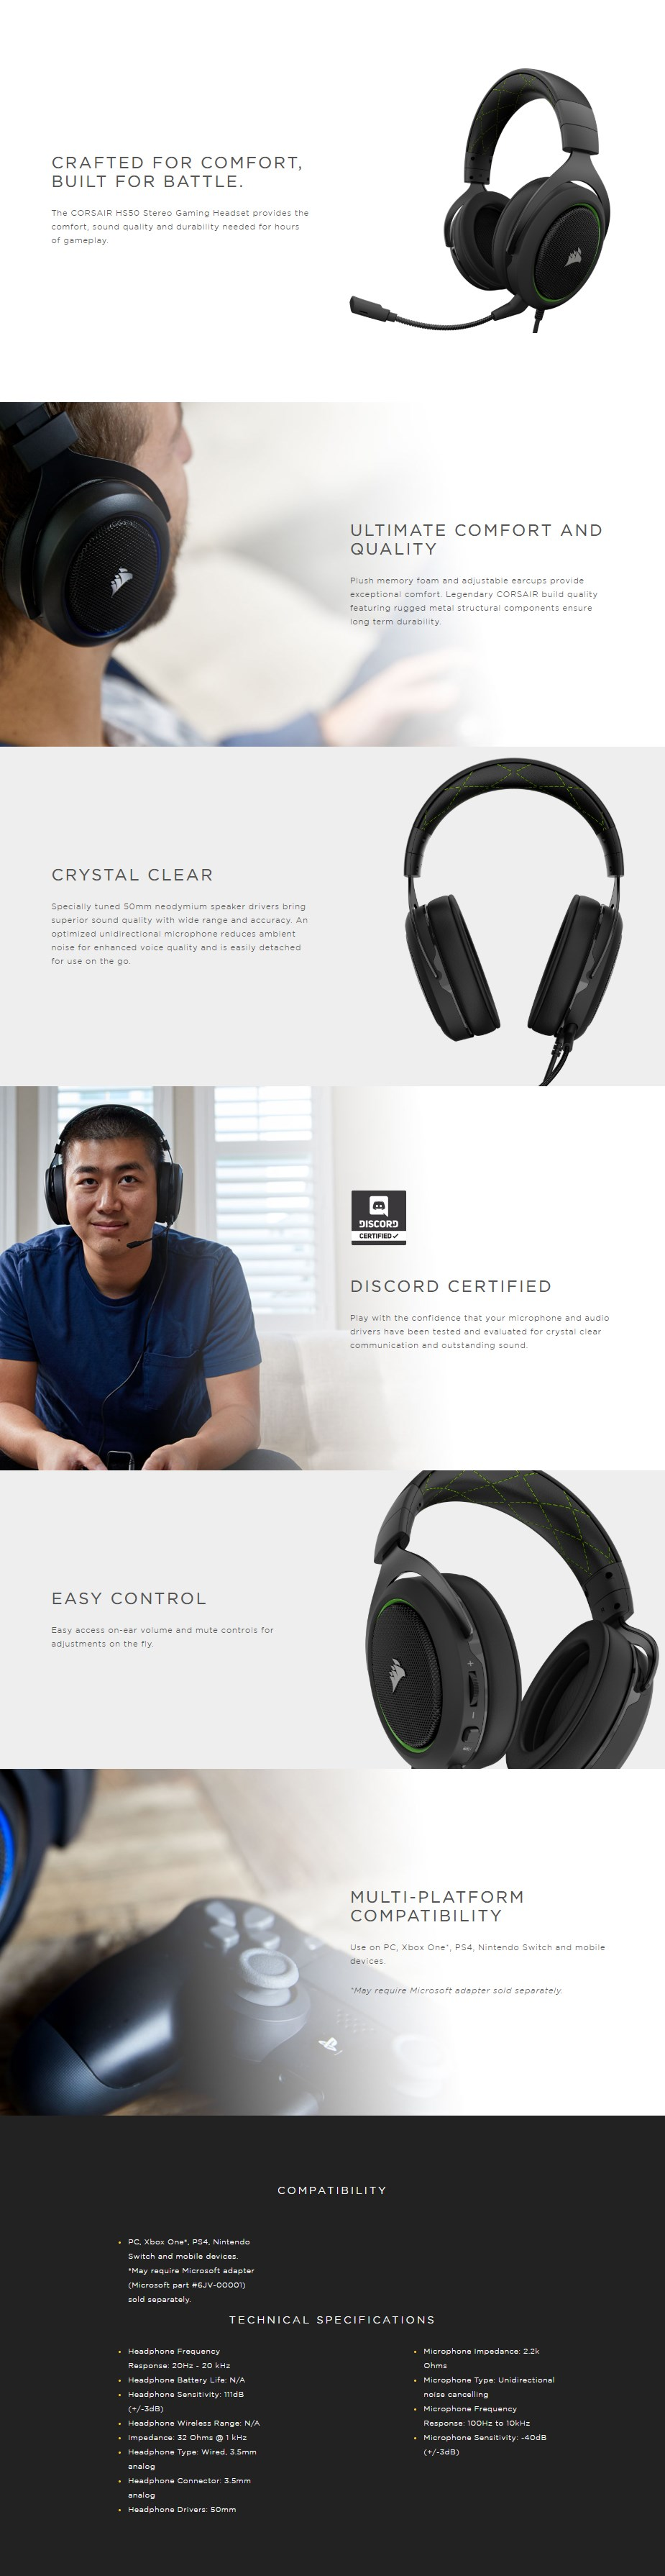 Corsair HS50 Stereo Gaming Headset - Green - Overview 1